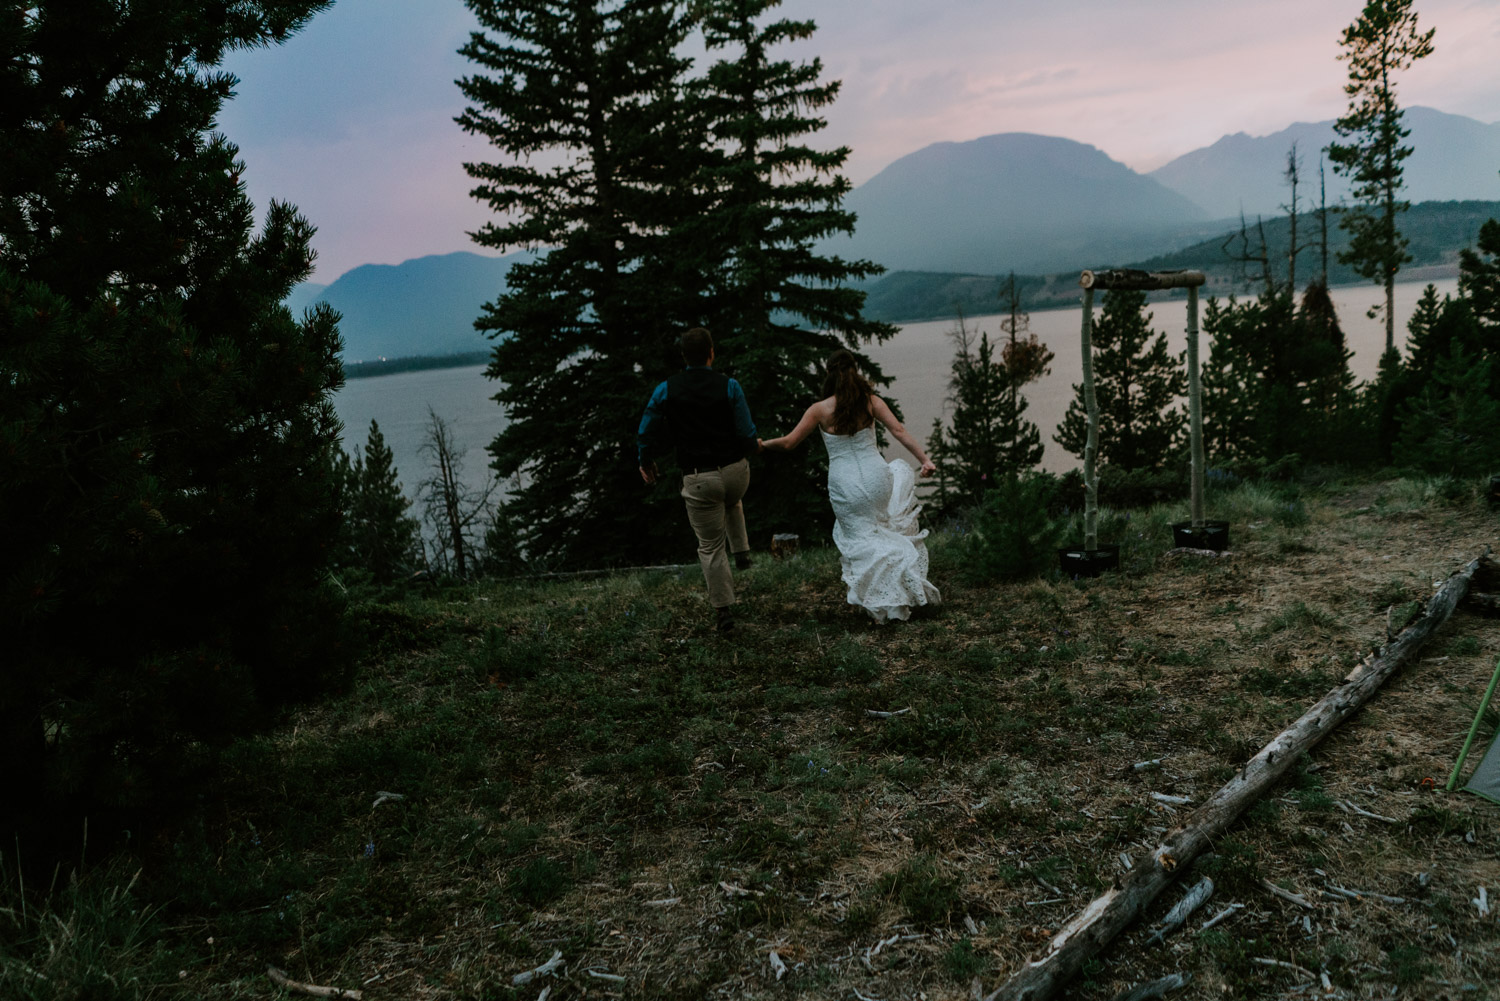 Beth_Jeff_Colorado_Wedding_MegONeillPhotography__180721_135